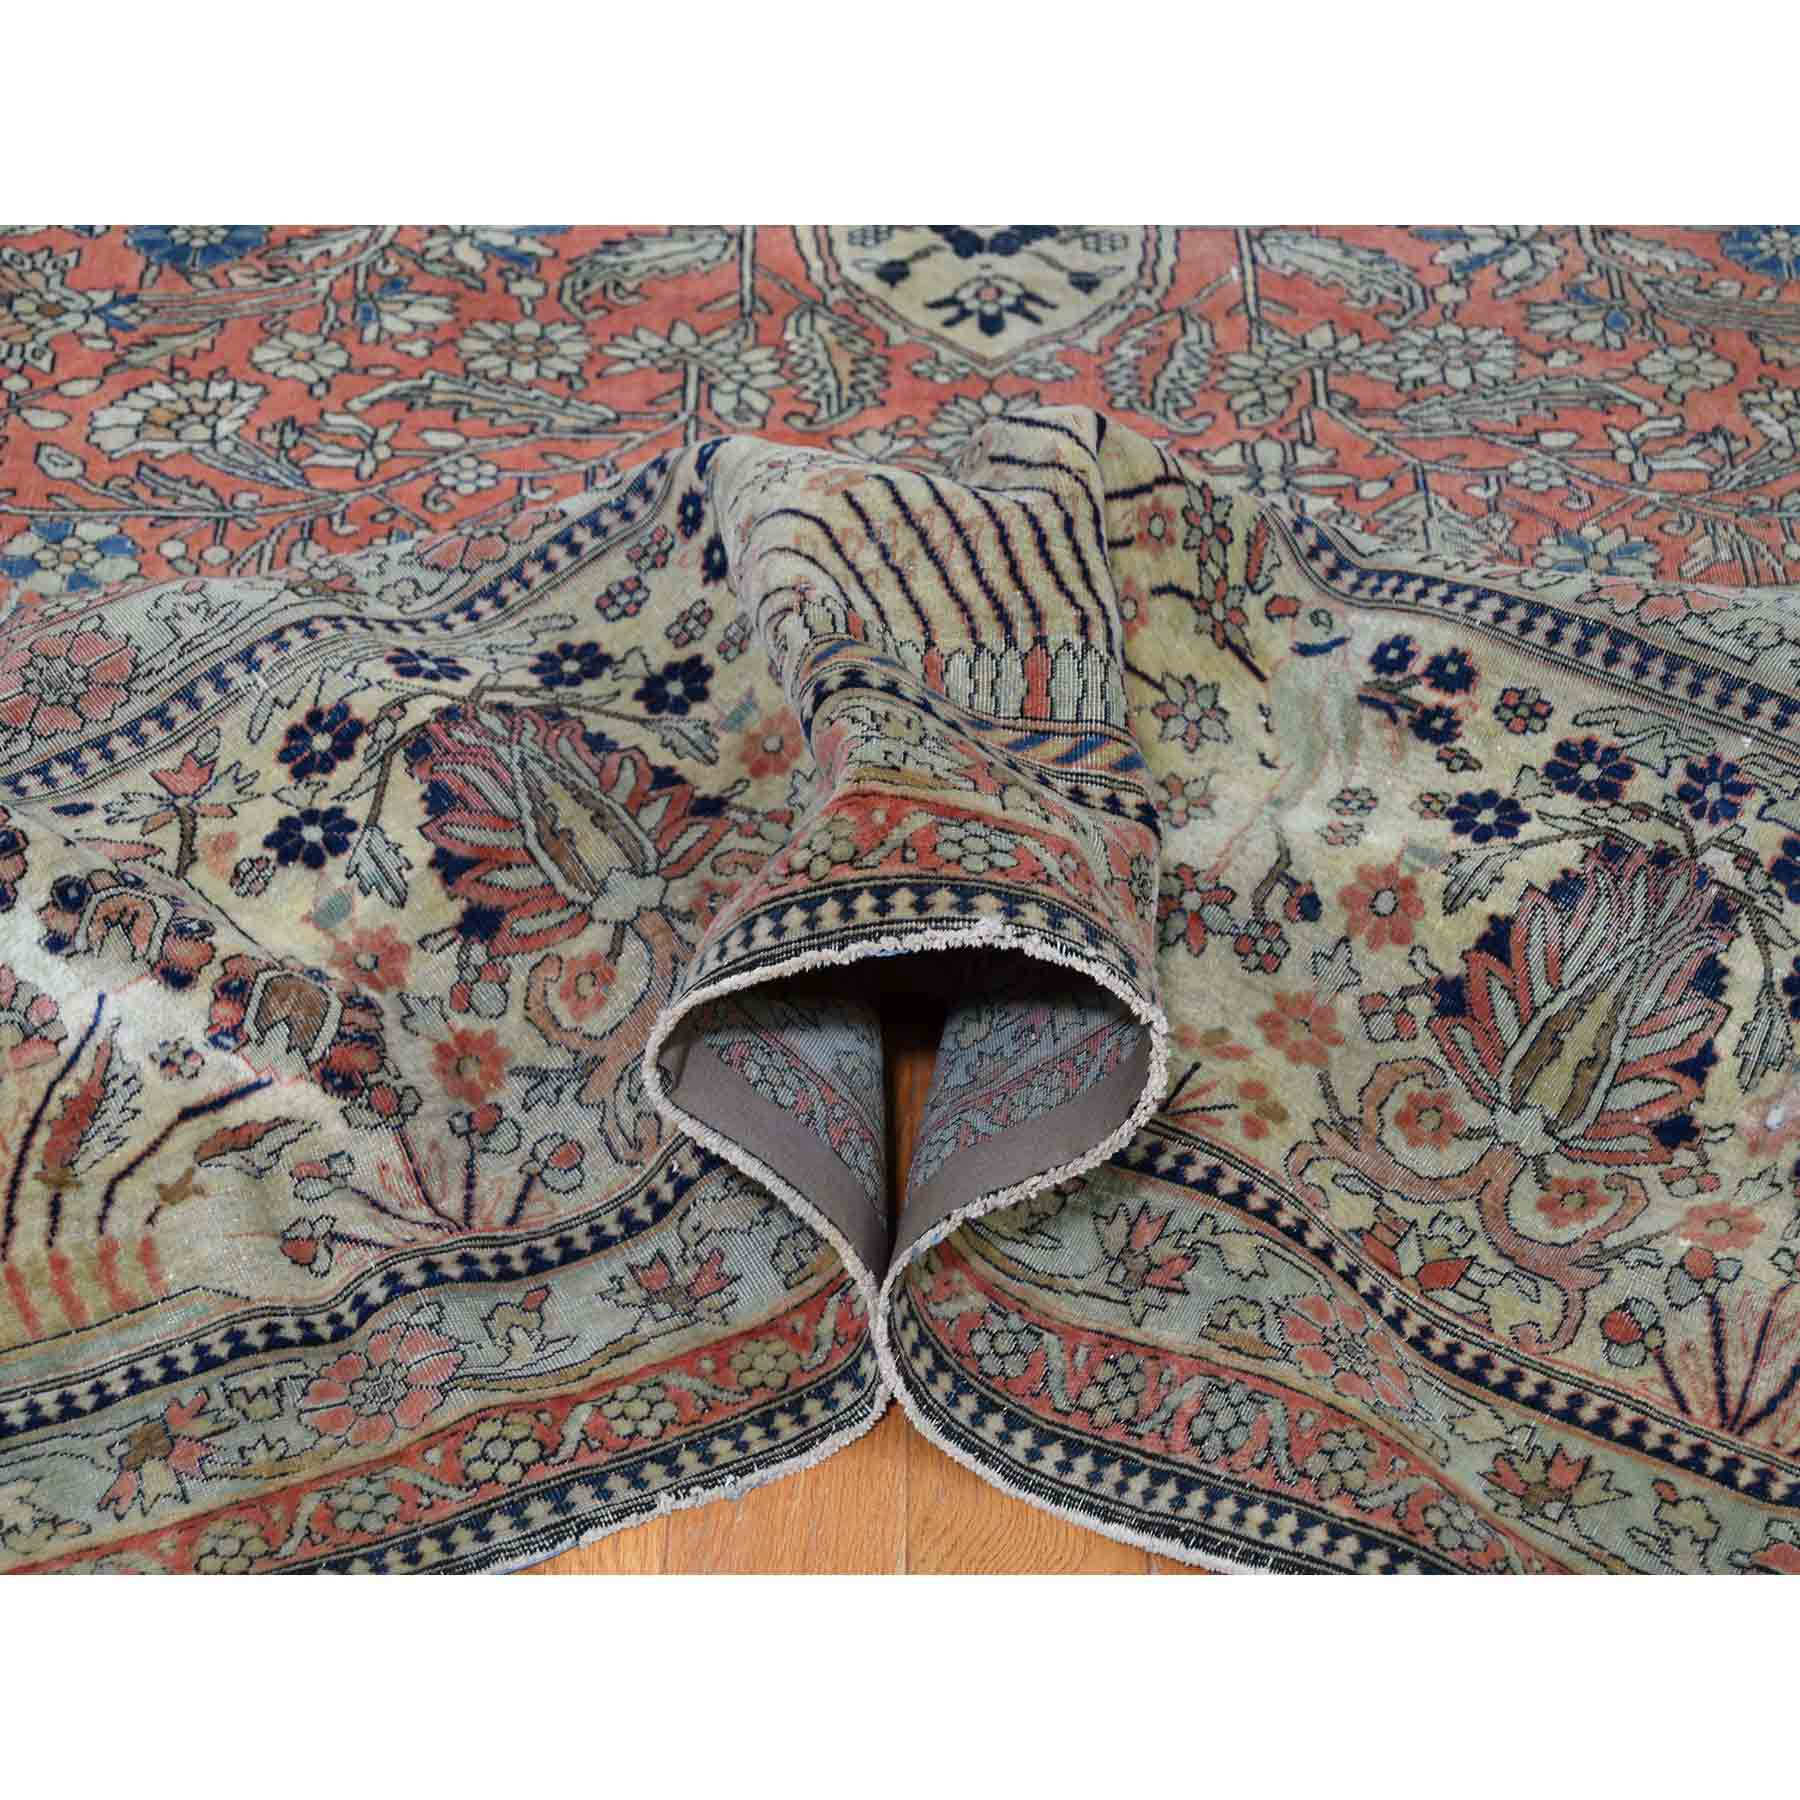 Antique-Hand-Knotted-Rug-232115